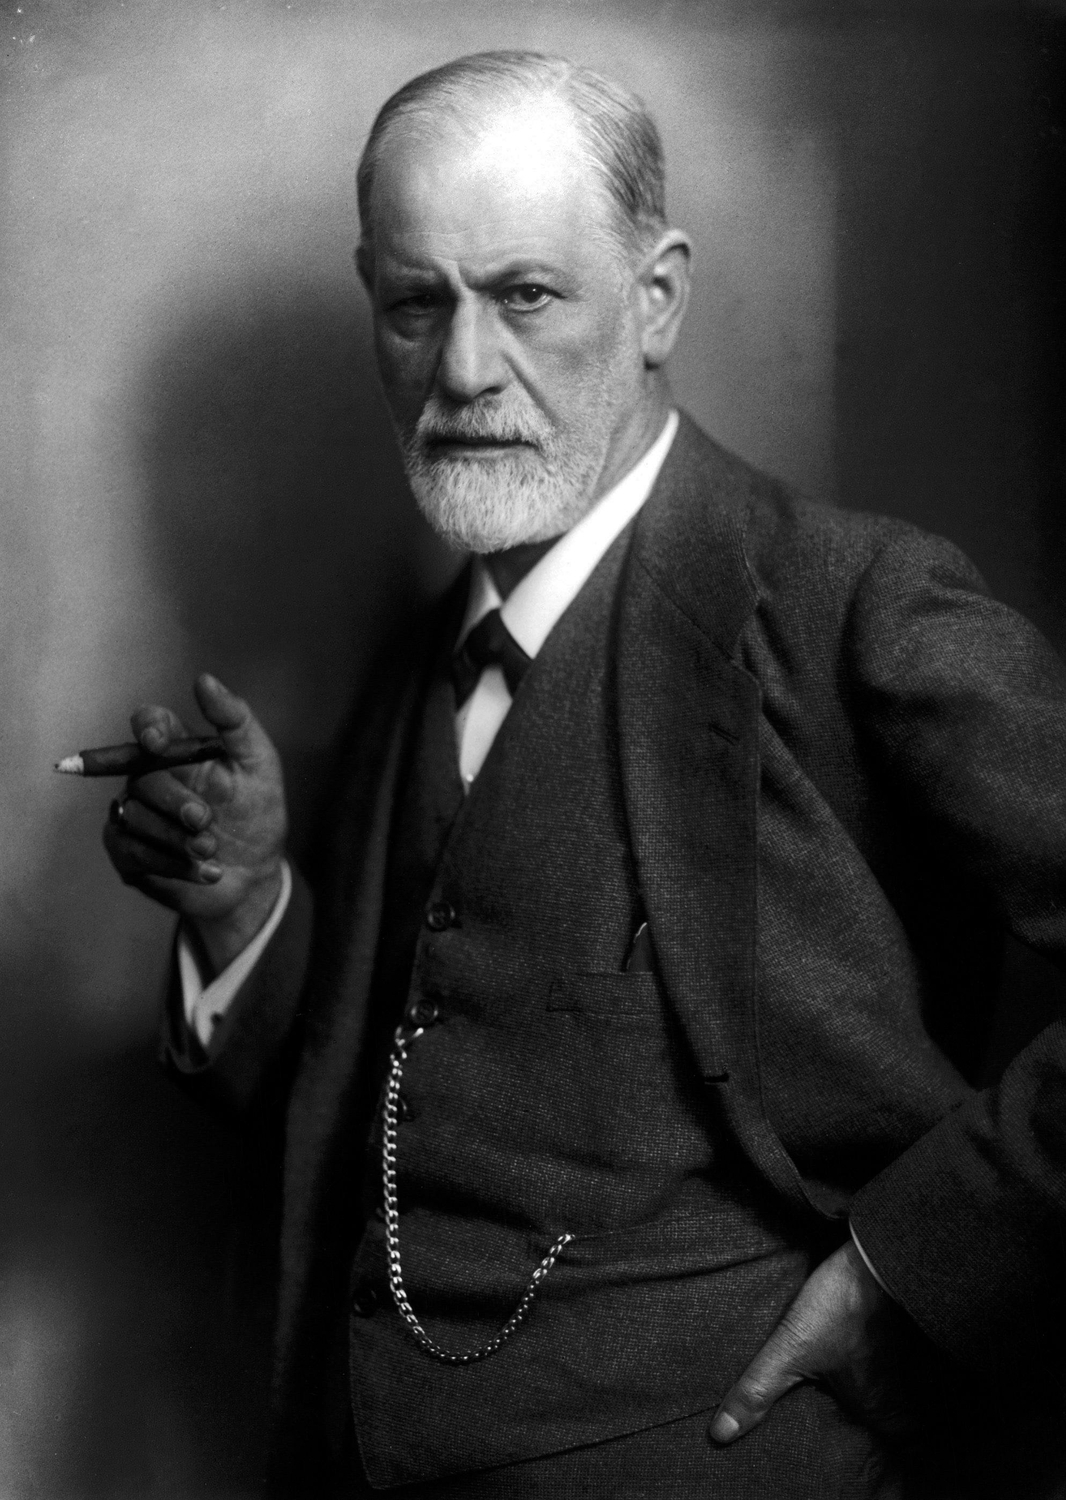 Sigmund Freud - By Max Halberstadt[1] (1882-1940) [Public domain], via Wikimedia Commons http://commons.wikimedia.org/wiki/File%3ASigmund_Freud_LIFE.jpg